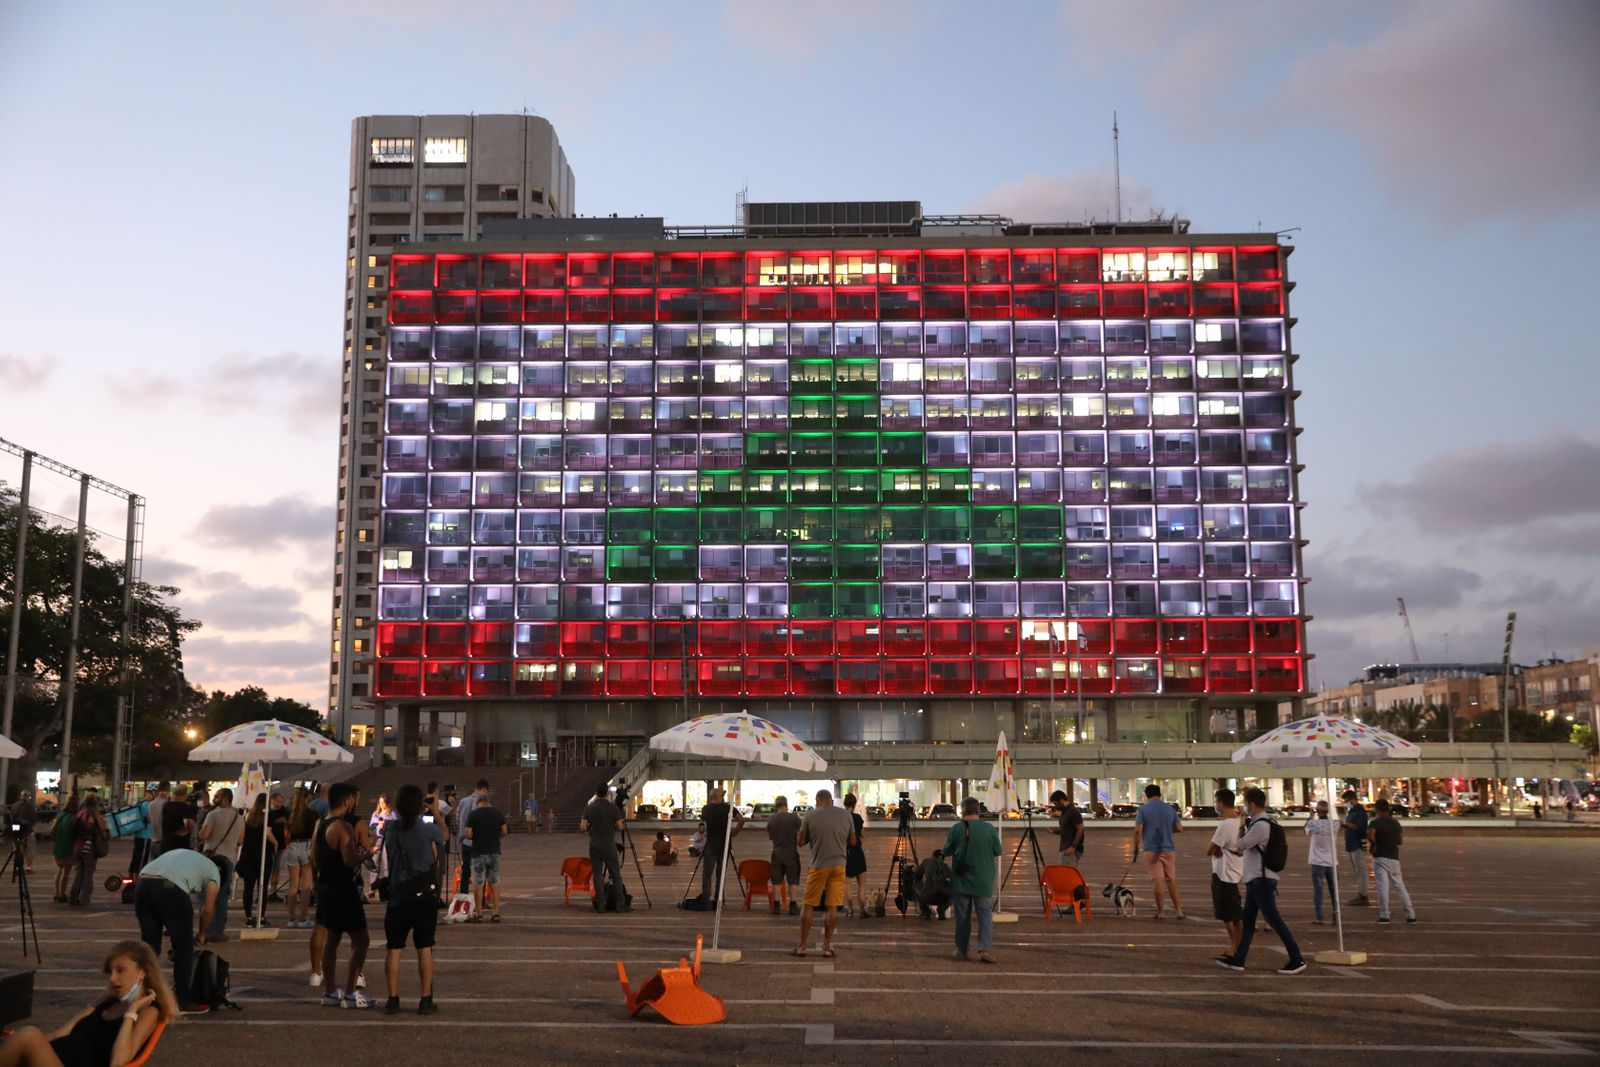 Tel Aviv solidarity with Beirut after explosion, Israel - 05 Aug 2020